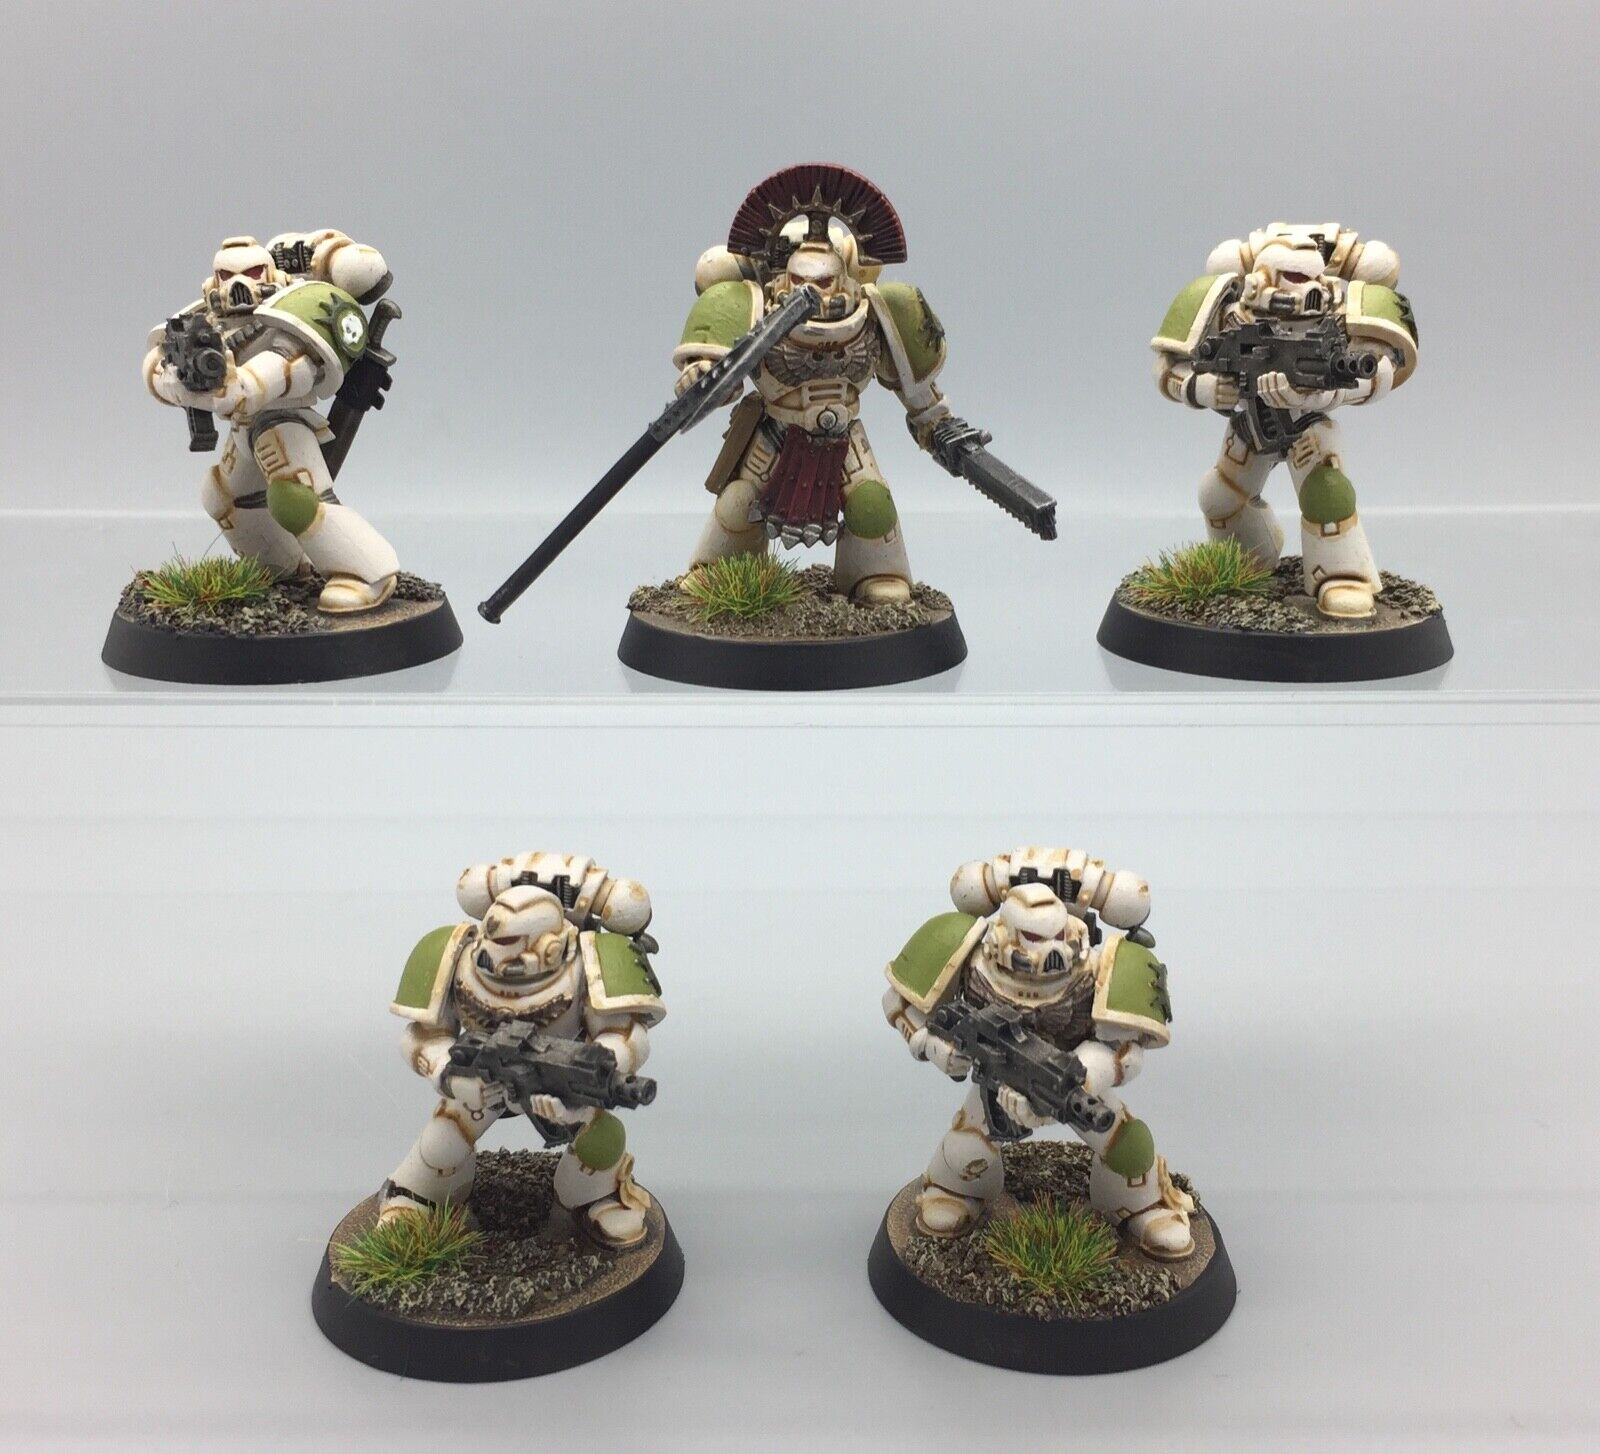 CHAOS SPACE MARINES PRE HERESY NURGLE DEATH GUARD KILL TEAM FORGE WORLD PAINTED